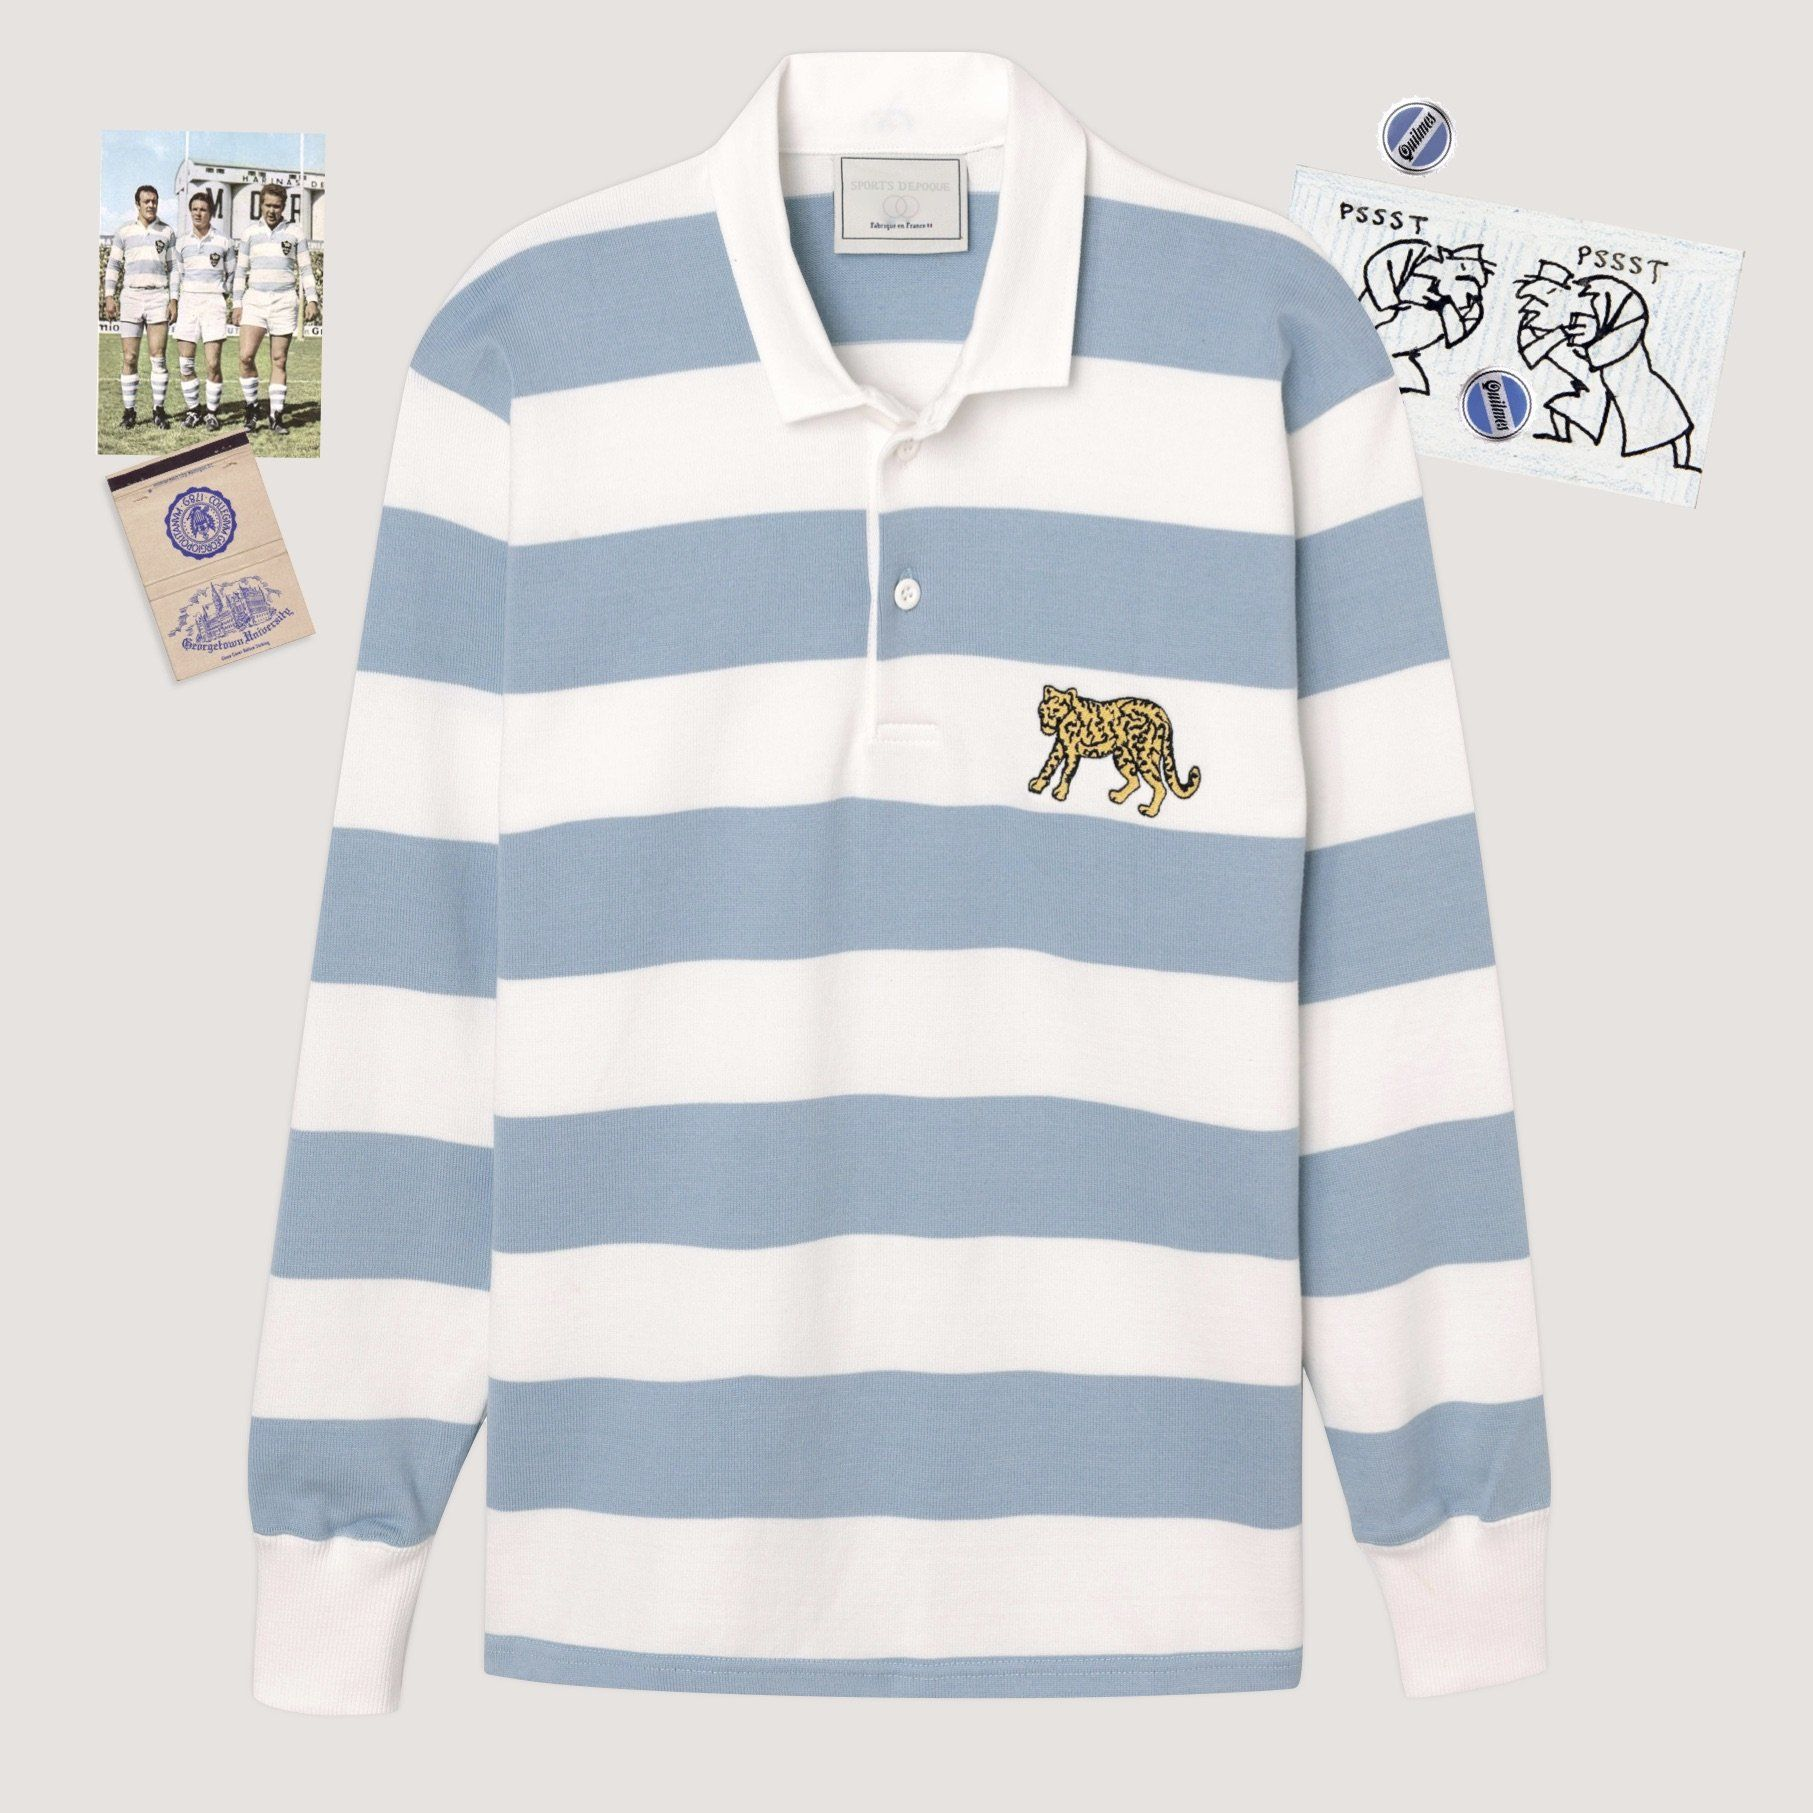 White And Light Blue Striped Rugby Jersey With Embroidered